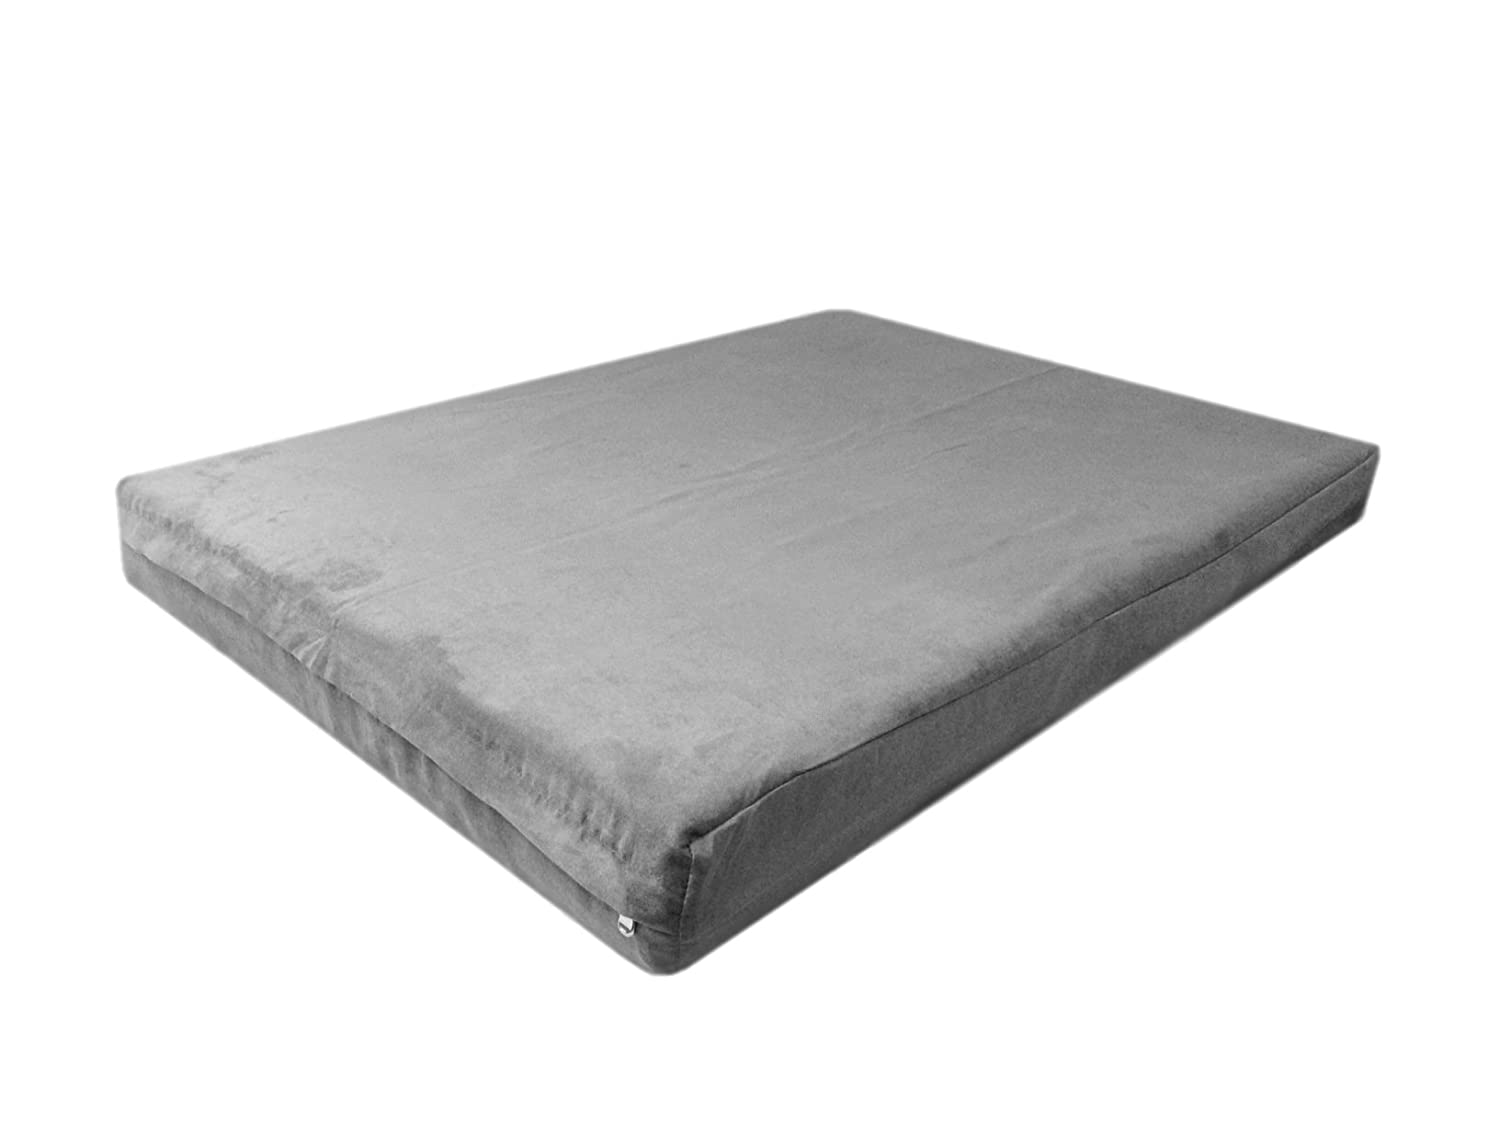 40''x35''x4'' Deluxe Top Quality Gray Color MicroSuede Fabric 100% Washable Luxury Comfort Replacement Dog Bed Zippered Duvet Gusset Case - Cover Only